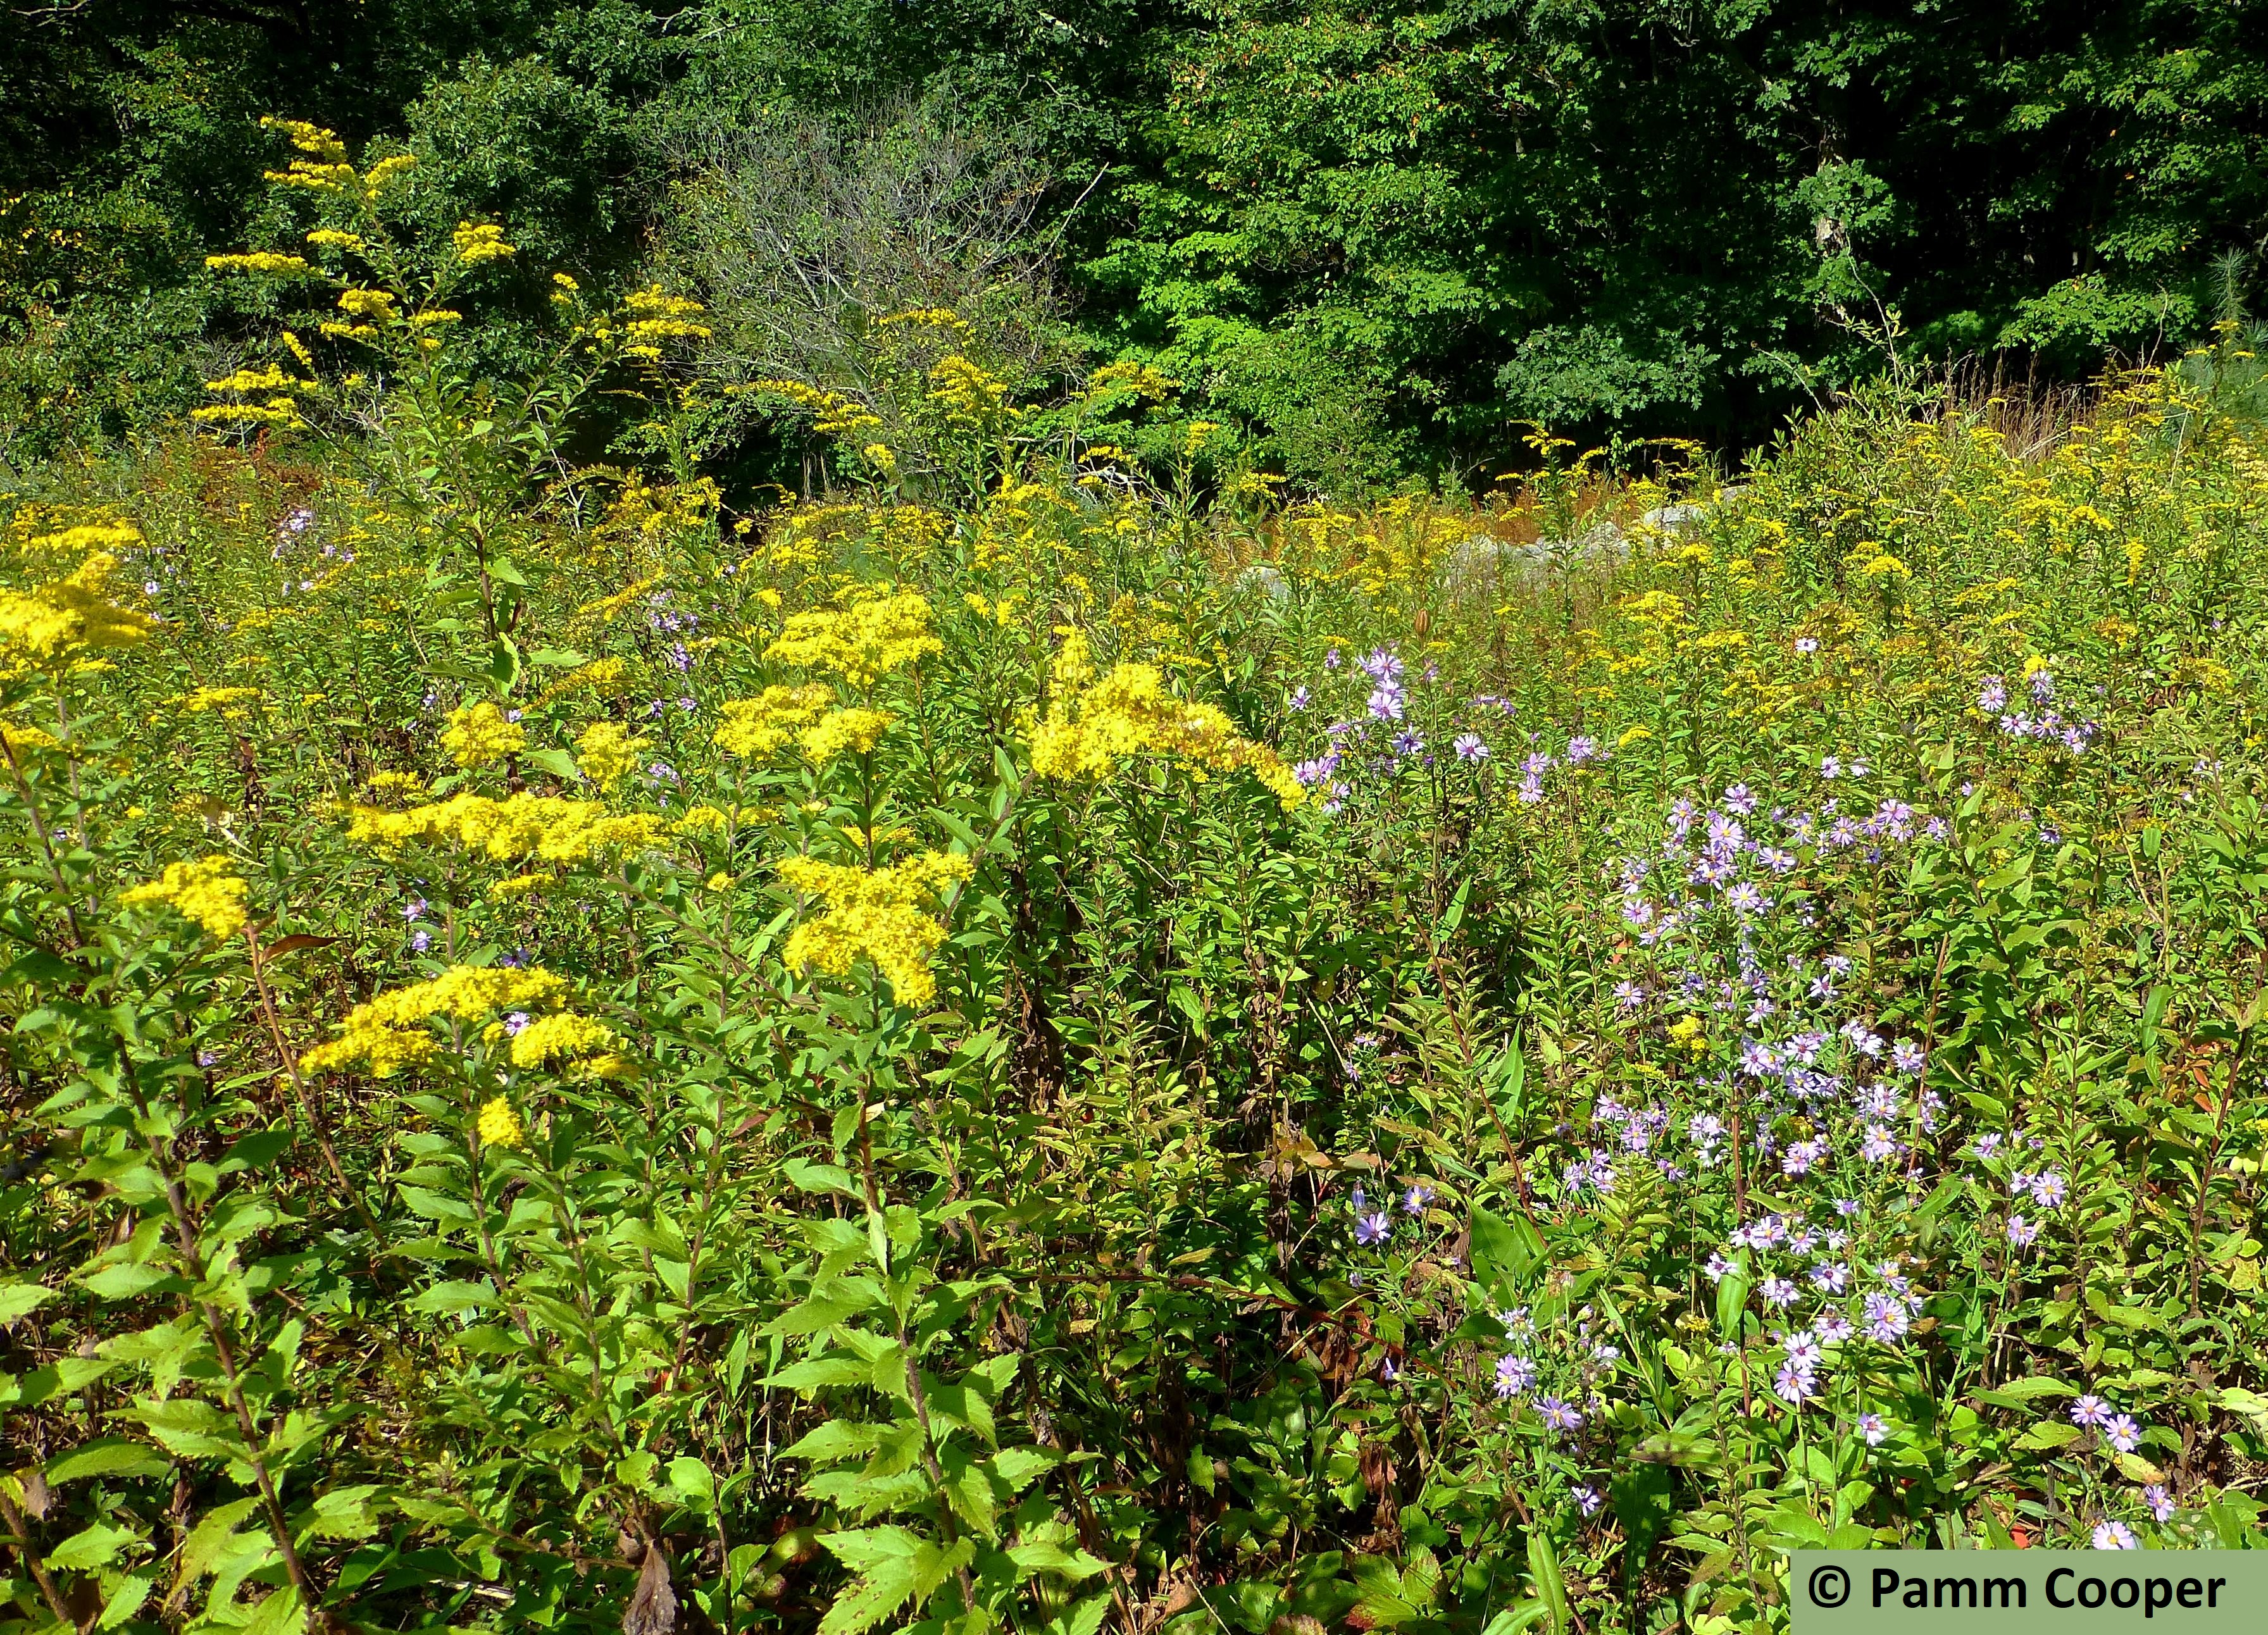 goldenrods and asters in a field